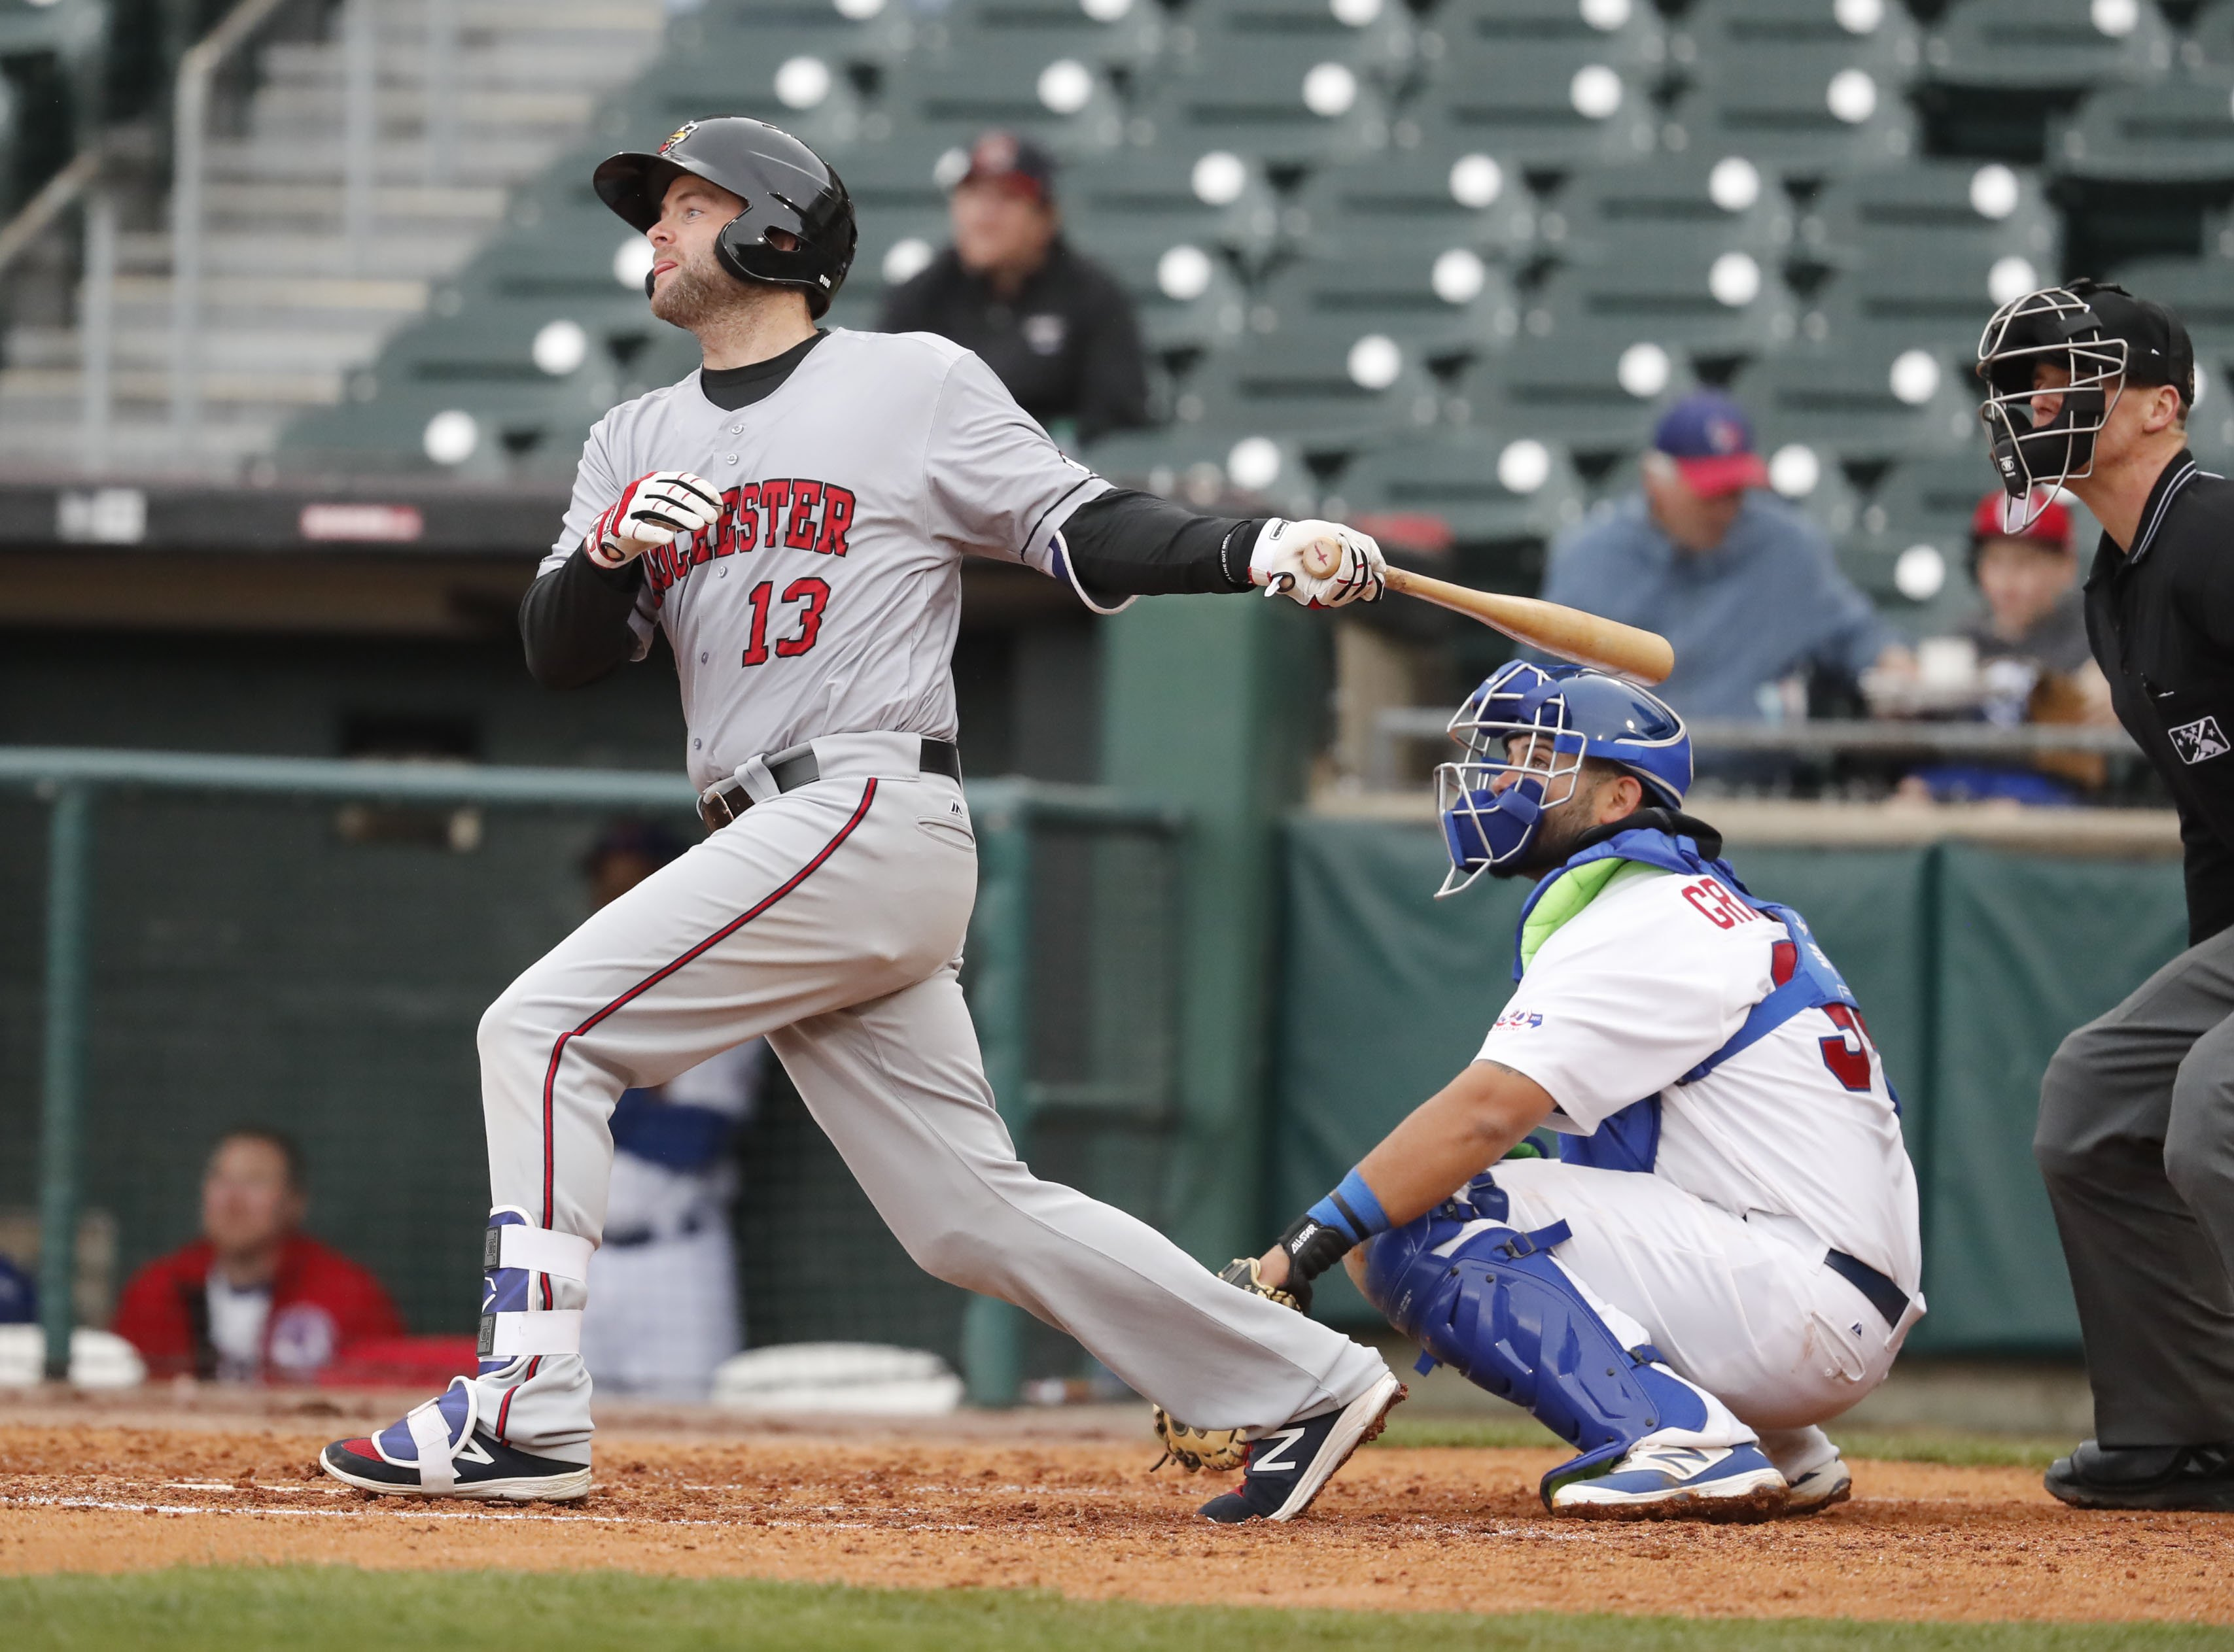 Matt Hague returned to Coca-Cola Field as a member of the Rochester Red Wings. (Harry Scull Jr./Buffalo News)